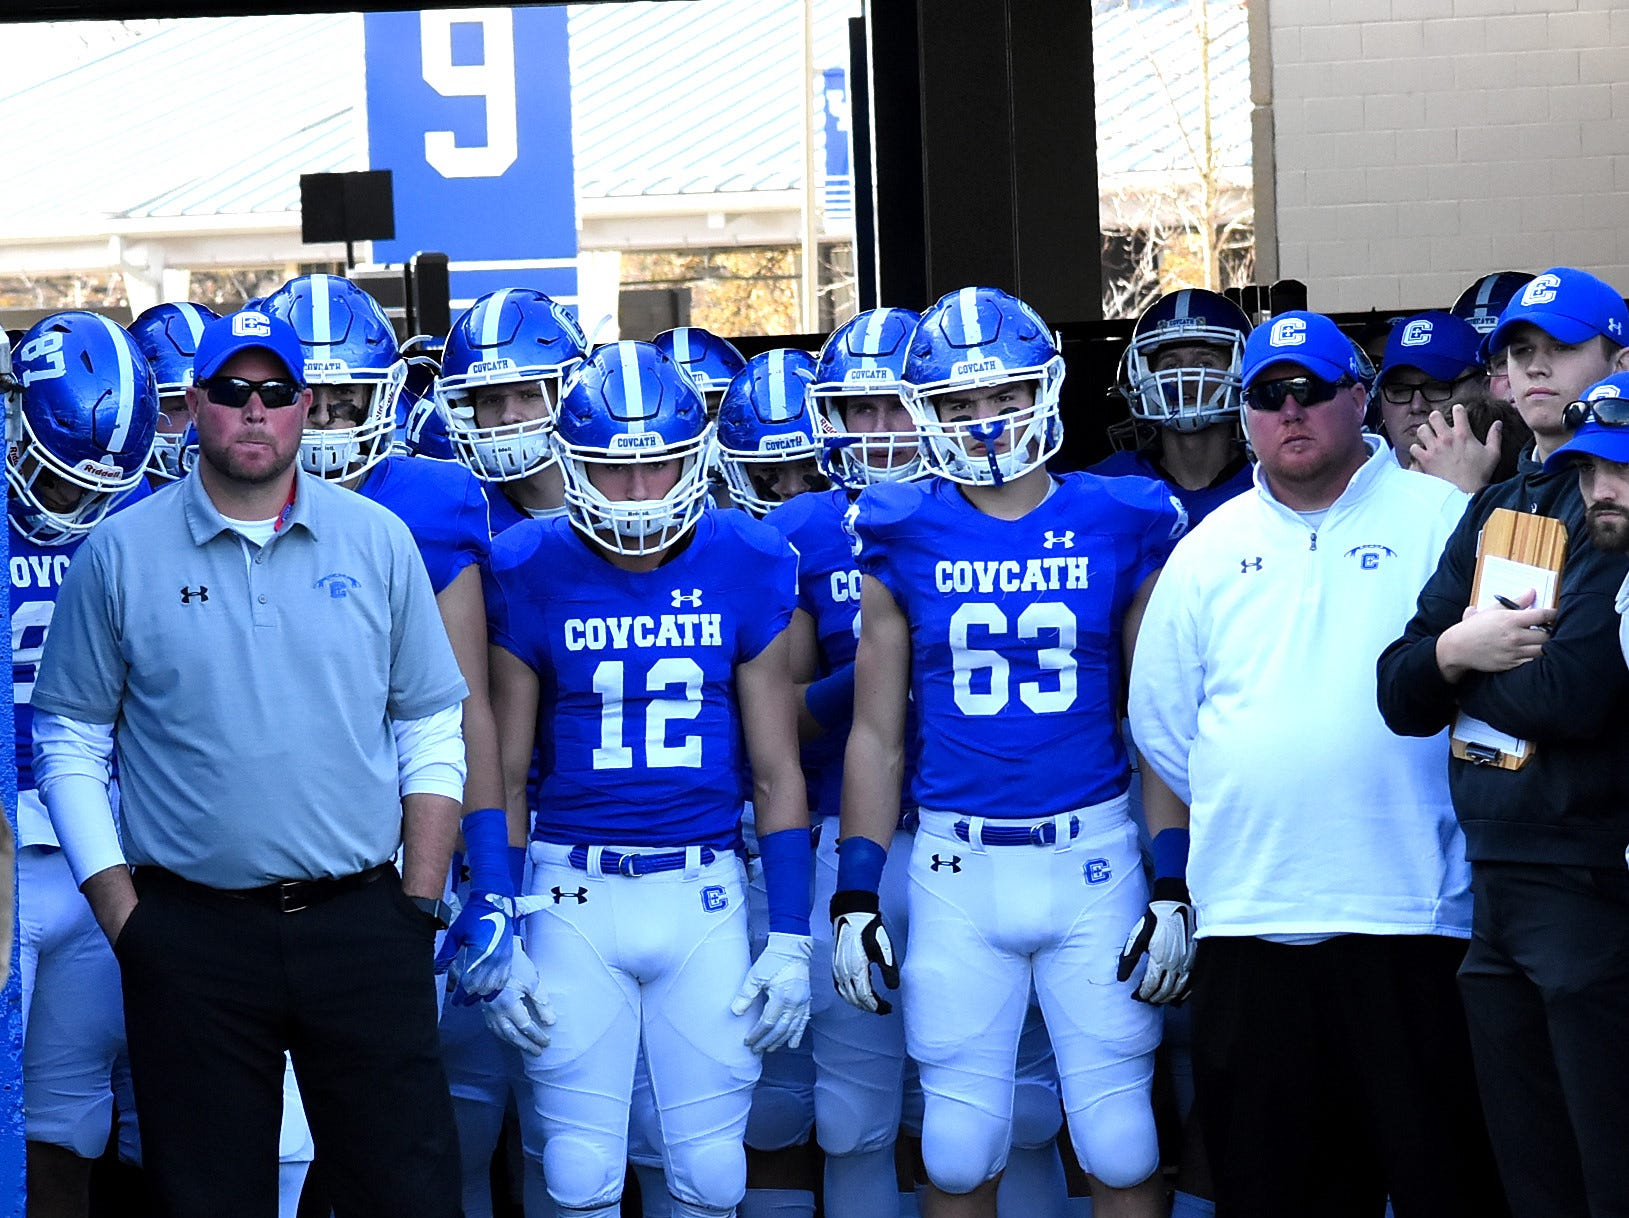 The Covington Catholic Colonels prepare to take the field  in the 2018 KHSAA 5A State Football Championship, December 2, 2018.